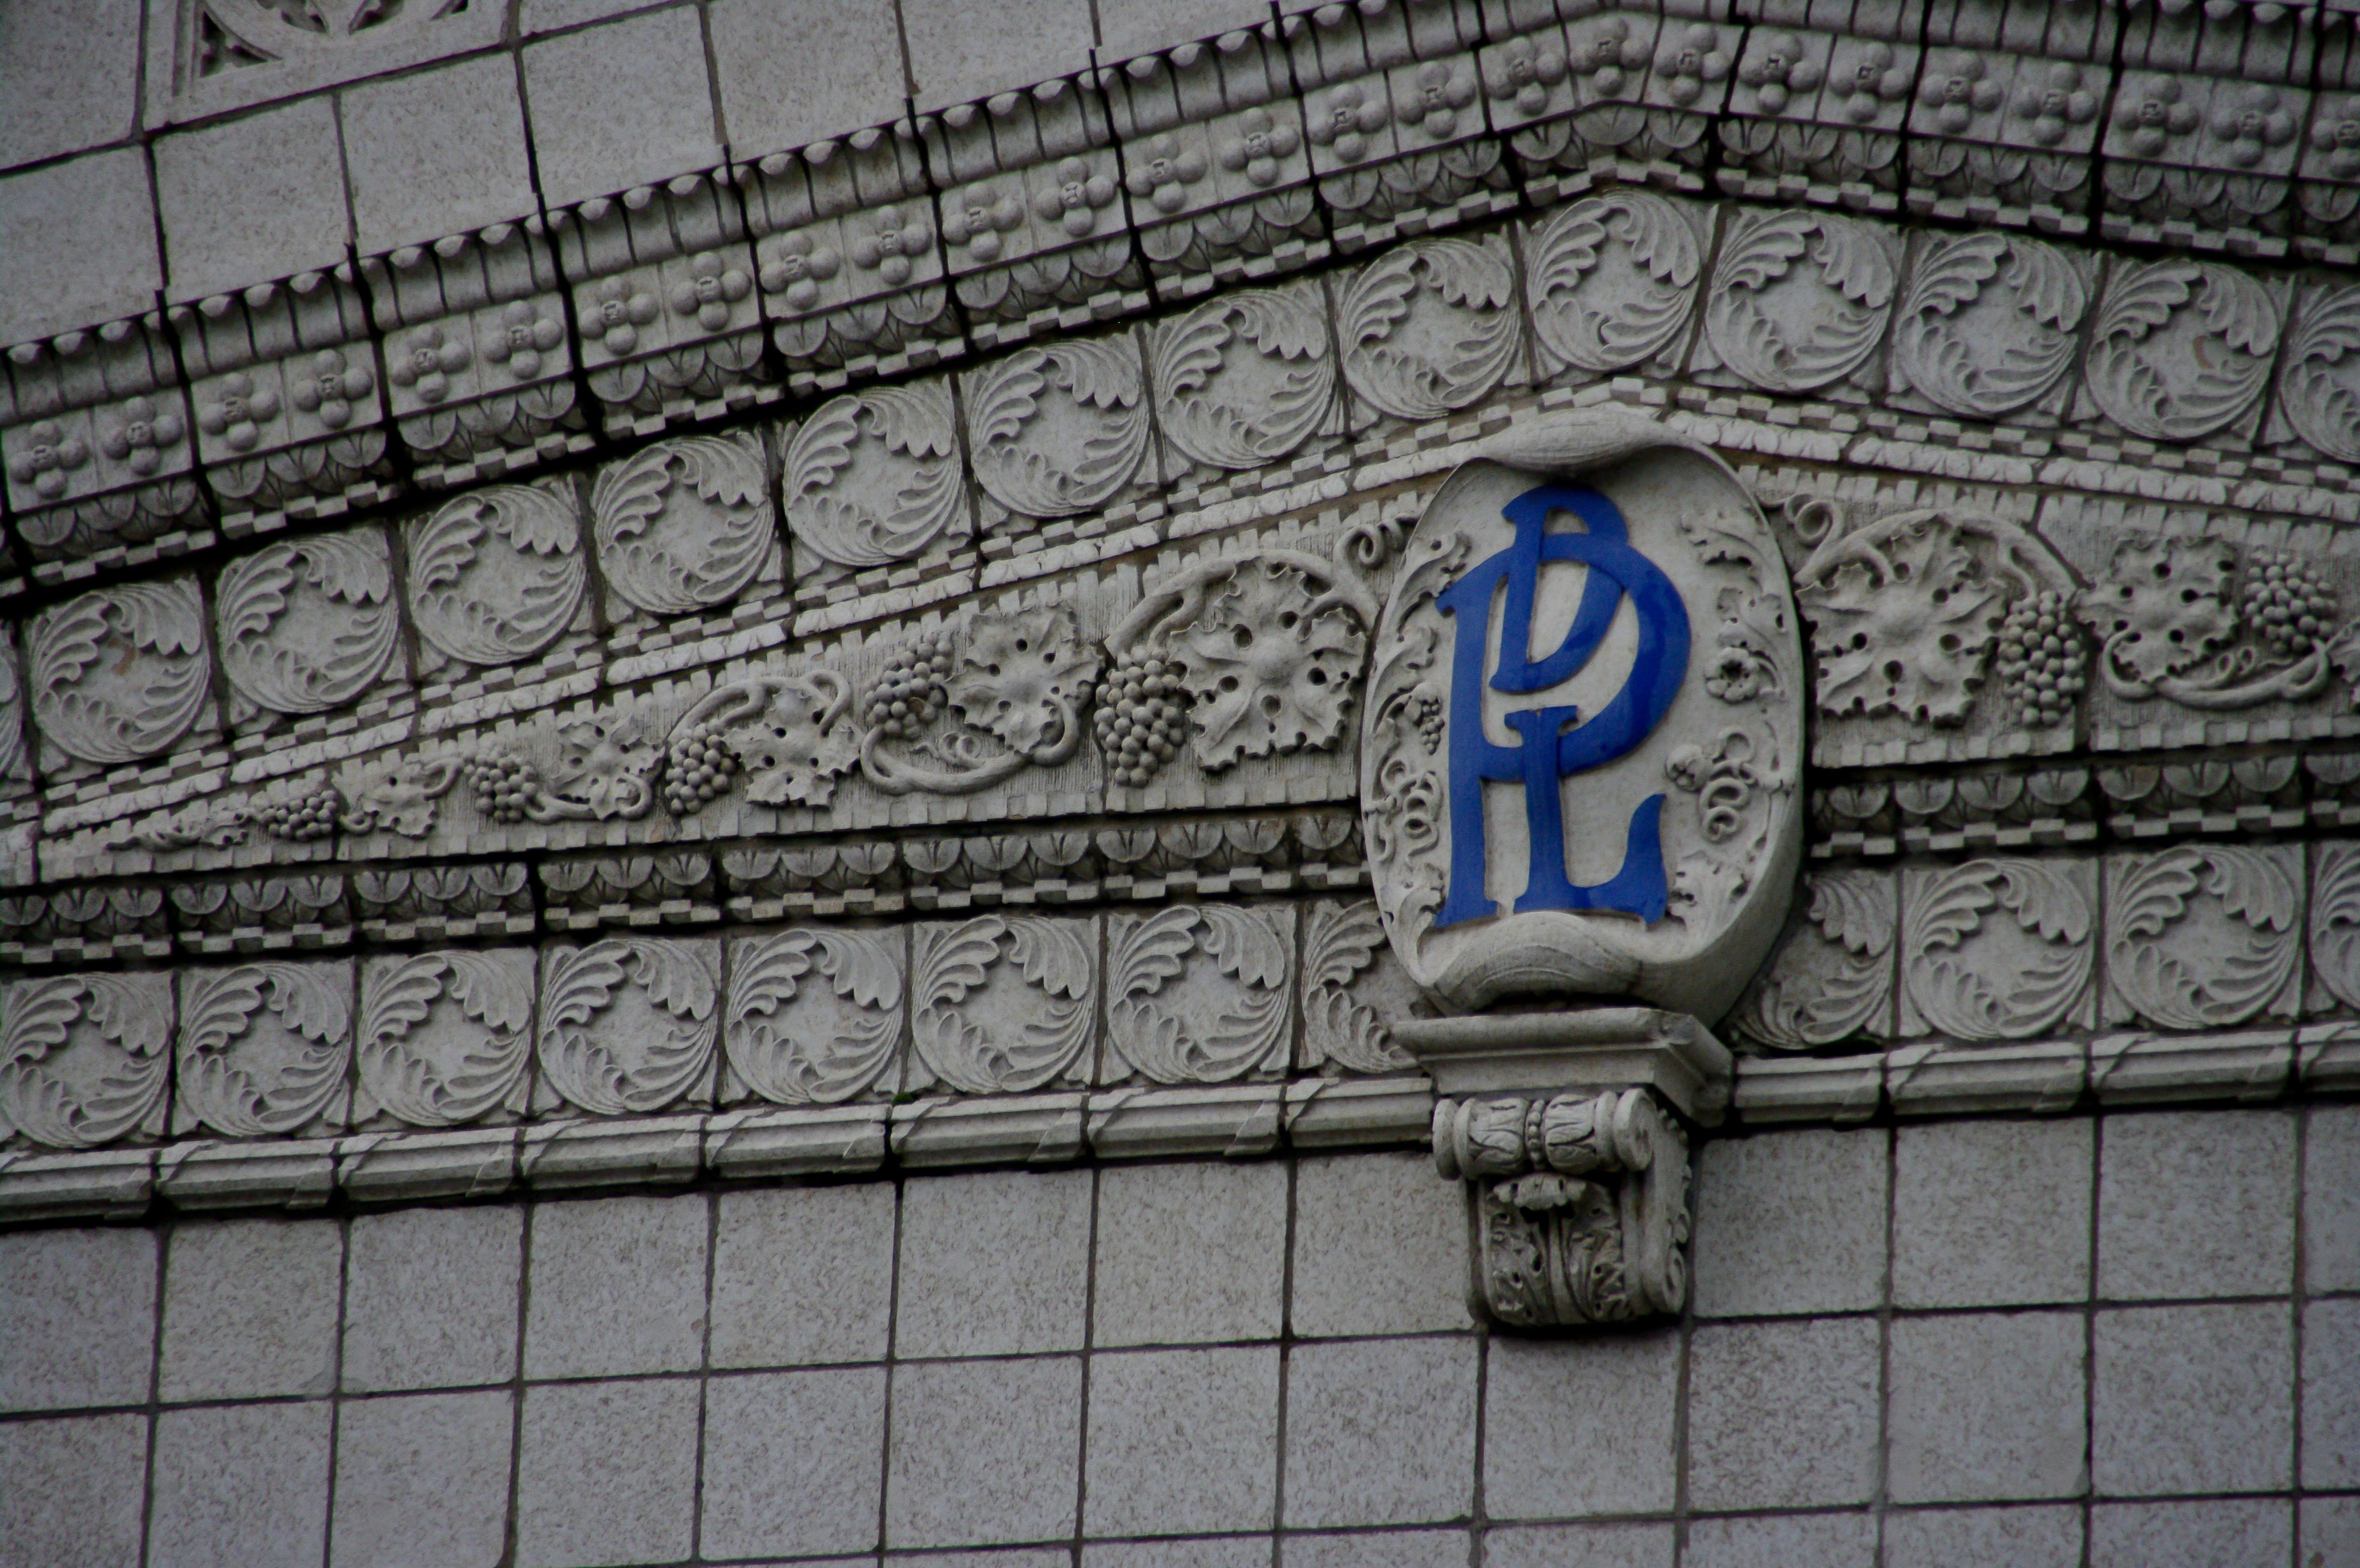 Detail of terra cotta on D. L. Parrish laundry building